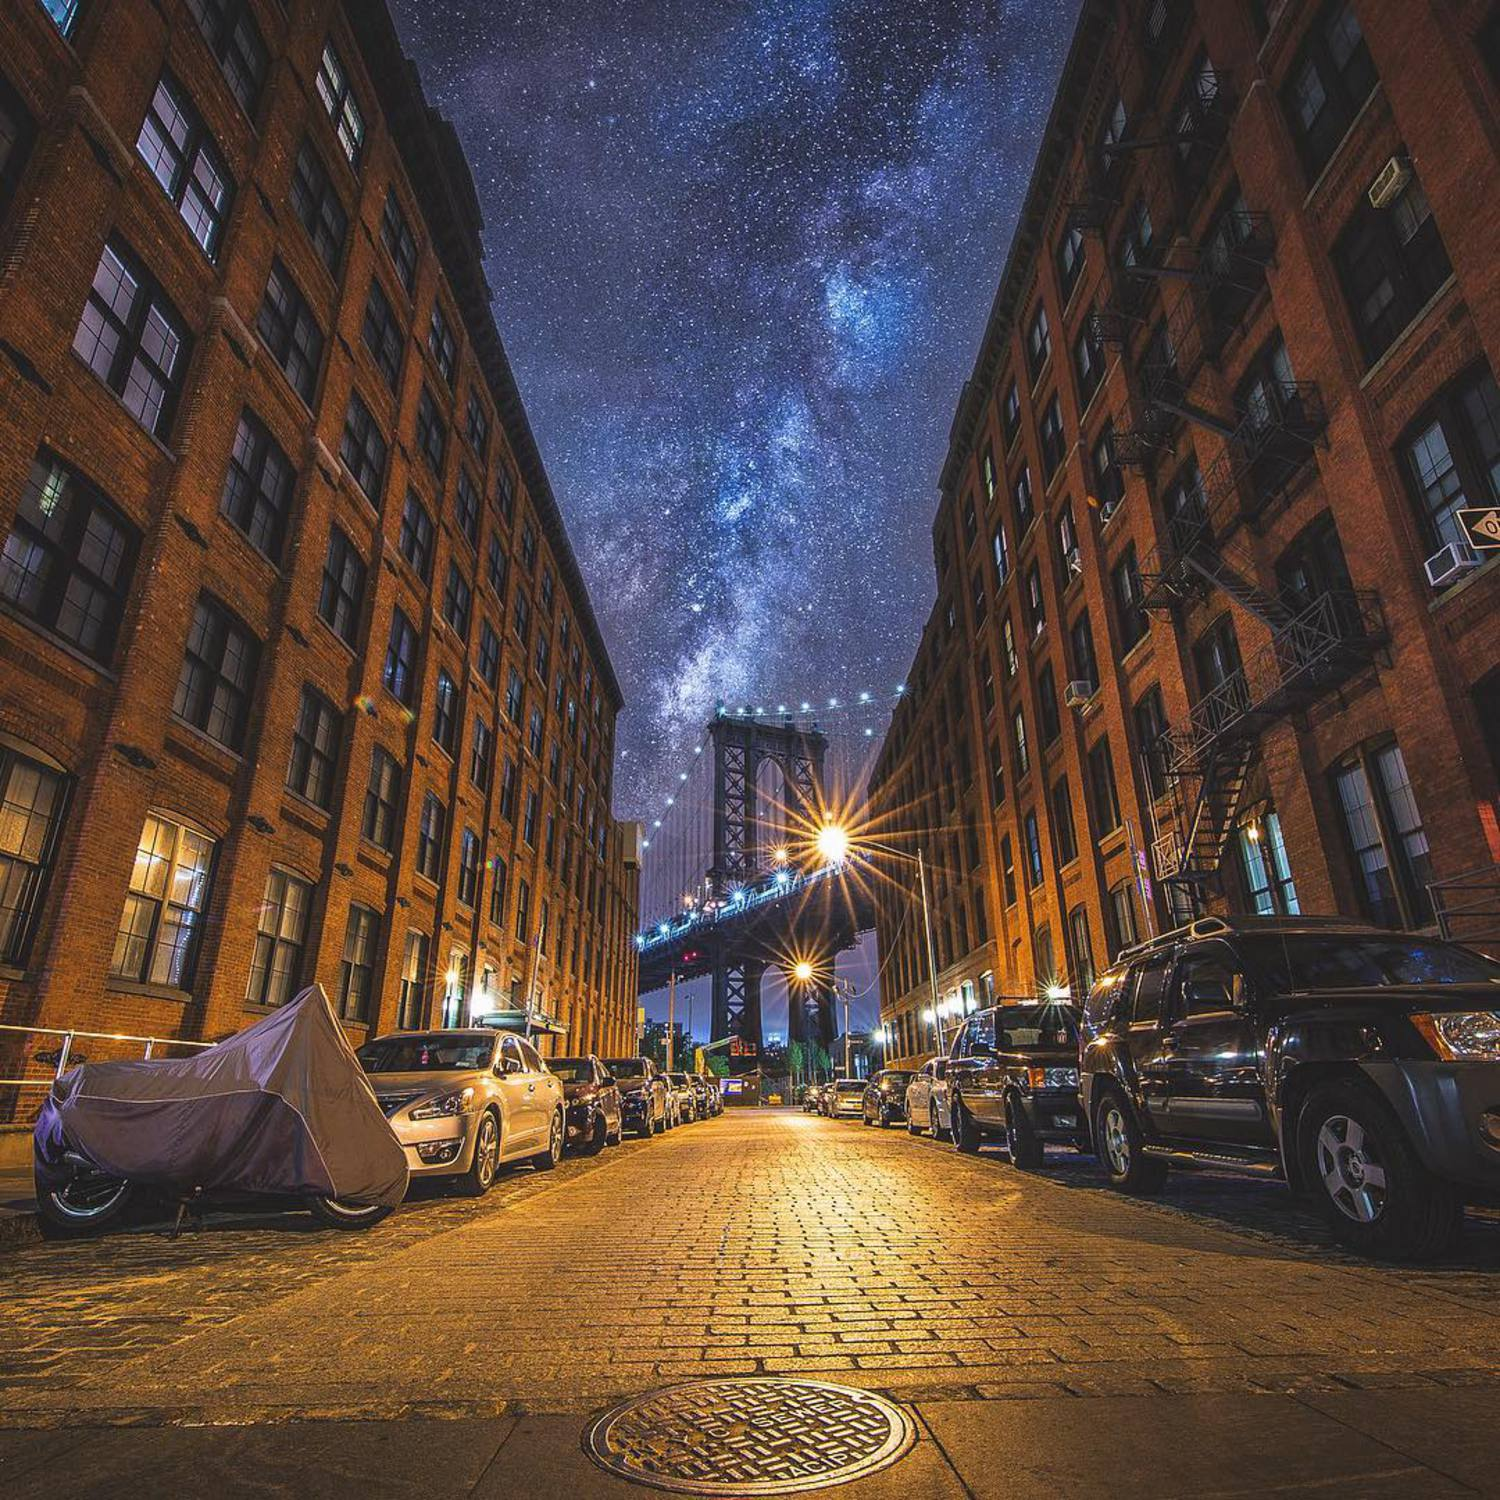 • The City from DUMBO •  A classic angle that had to be snapped when I was shooting in Brooklyn with @mjinnyc and @bbsinghphotos - clearly they missed the huge milky way that appeared out of nowhere! 😂❤️